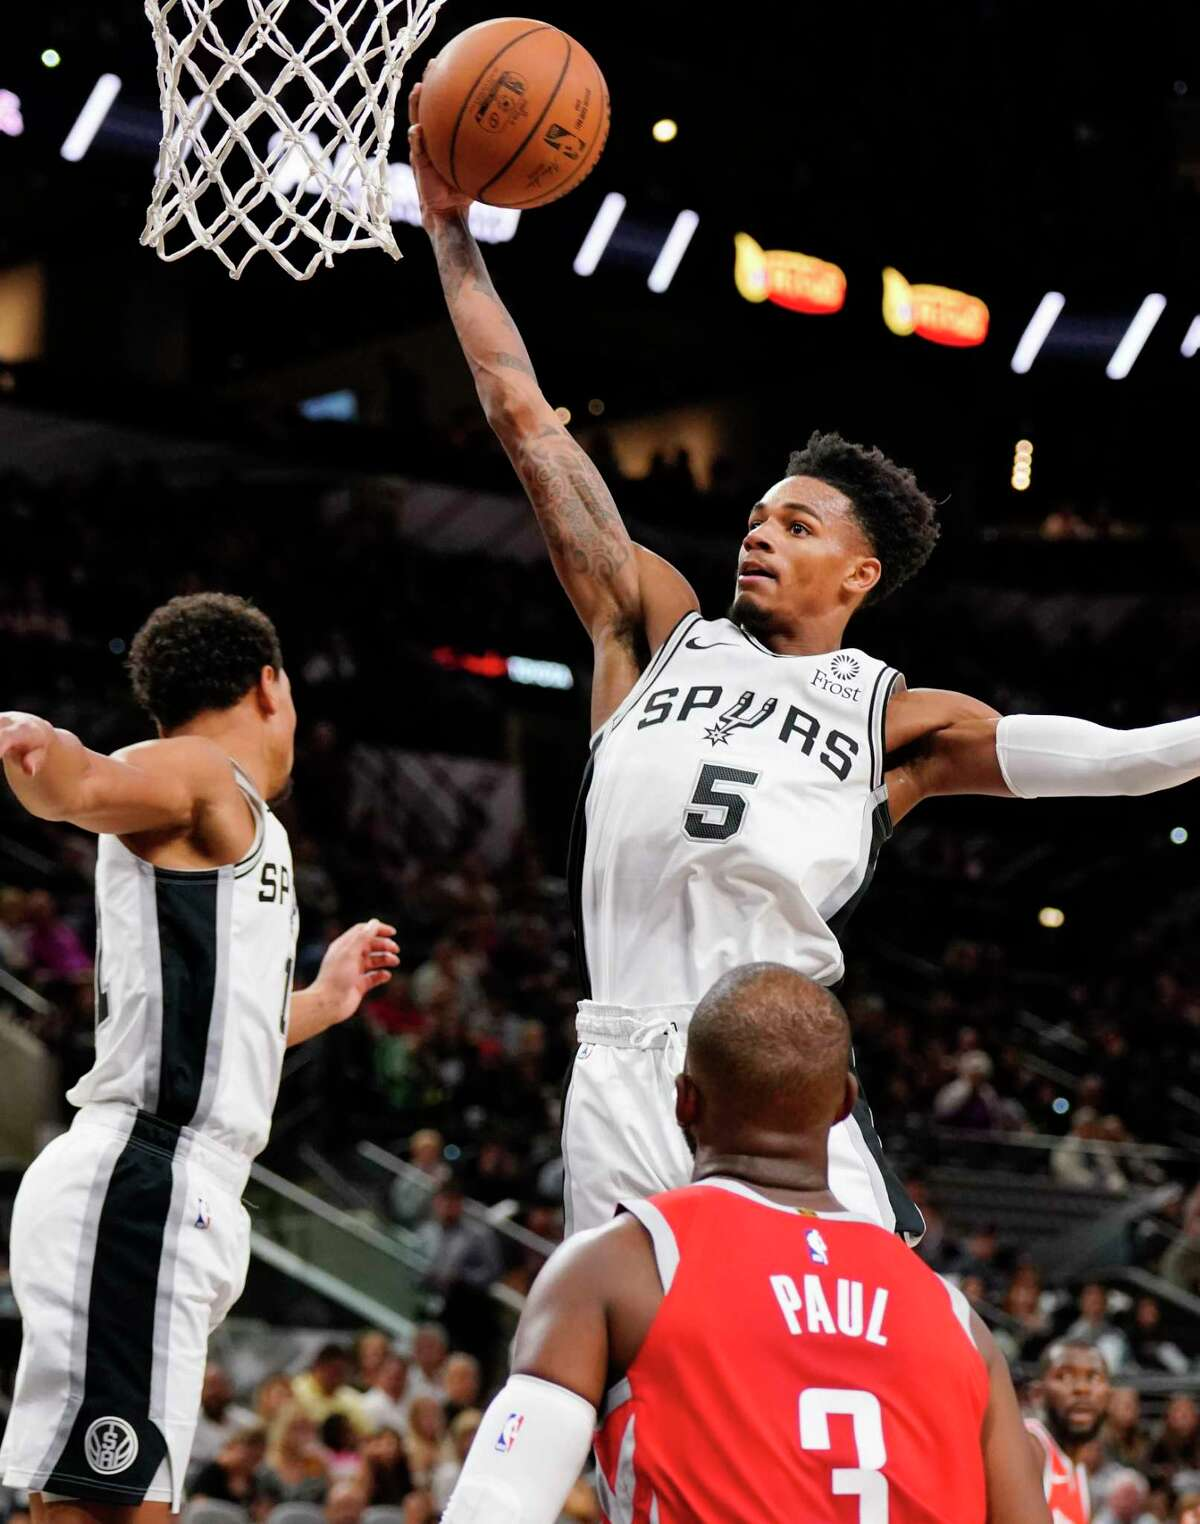 San Antonio Spurs' Dejounte Murray (5) grabs a rebound next to teammate Bryn Forbes, left, and Houston Rockets' Chris Paul (3) during the second half of an NBA preseason basketball game, Sunday, Oct. 7, 2018, in San Antonio. (AP Photo/Darren Abate)